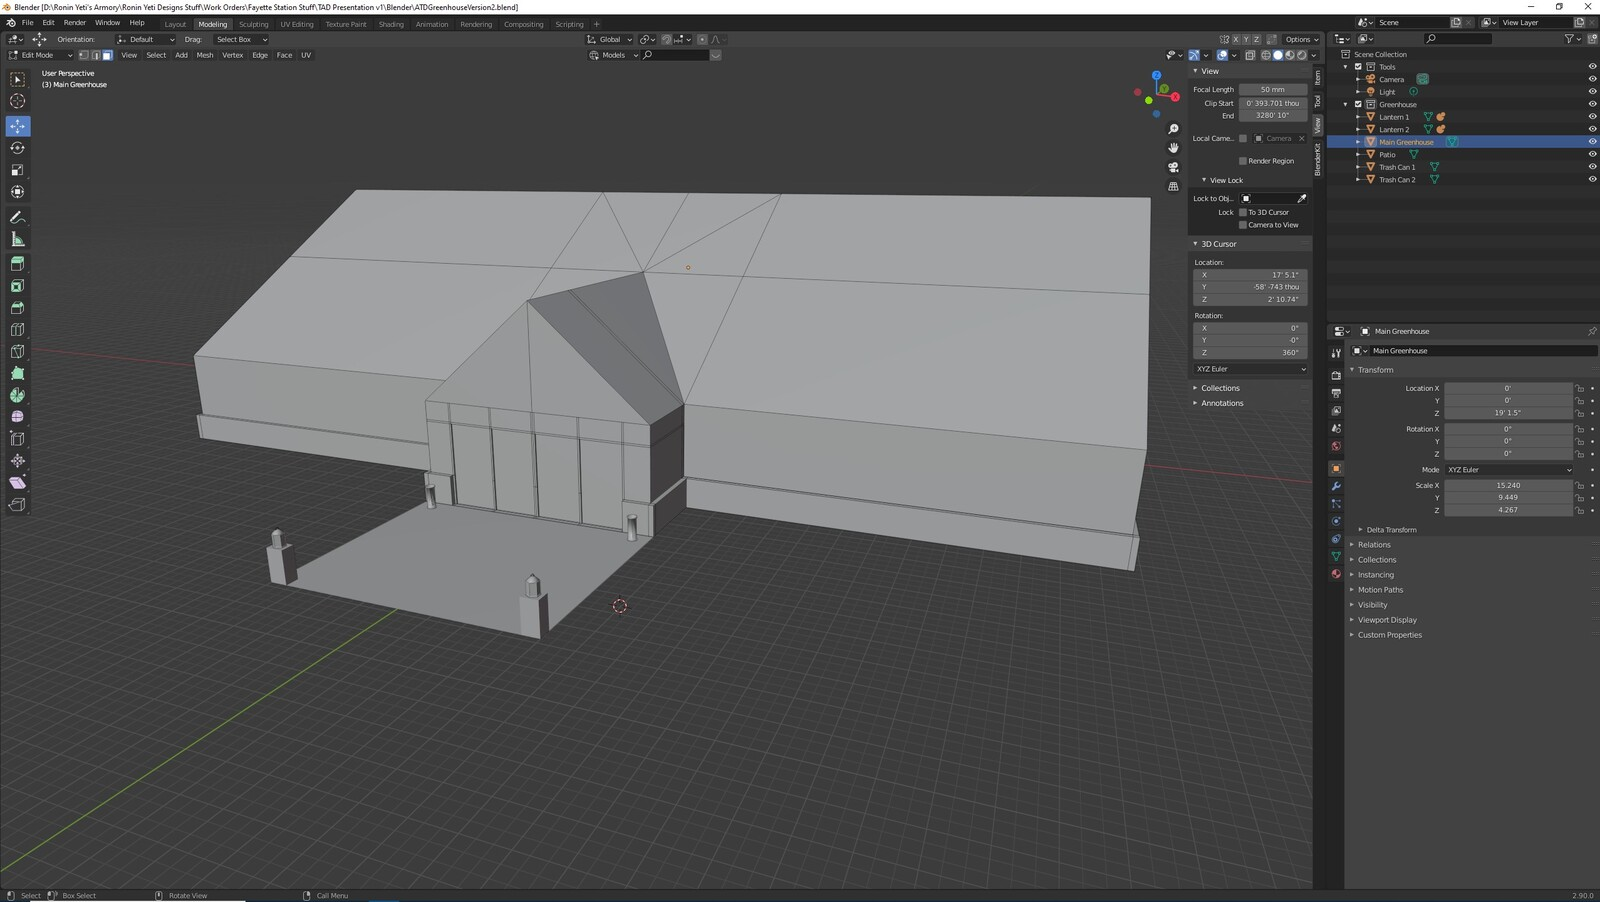 The other angle for the TAD Presentation Greenhouse (Whitebox version)